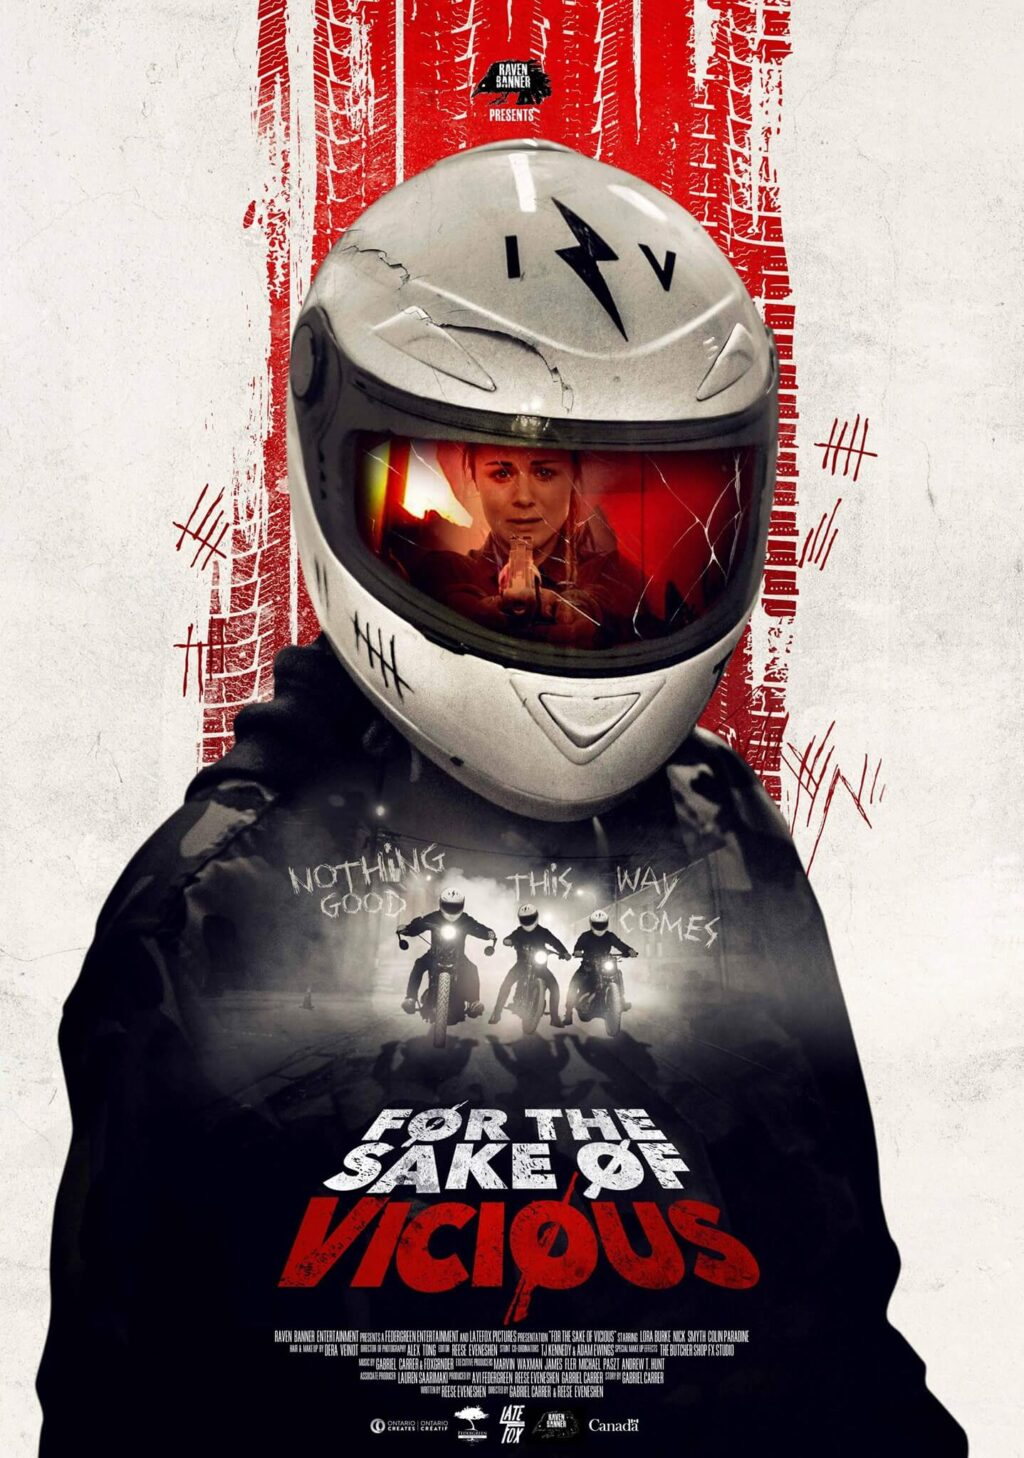 for the sake of vicious poster 1 1024x1458 - Brutal Trailer For Canadian Home Invasion Thriller FOR THE SAKE OF VICIOUS